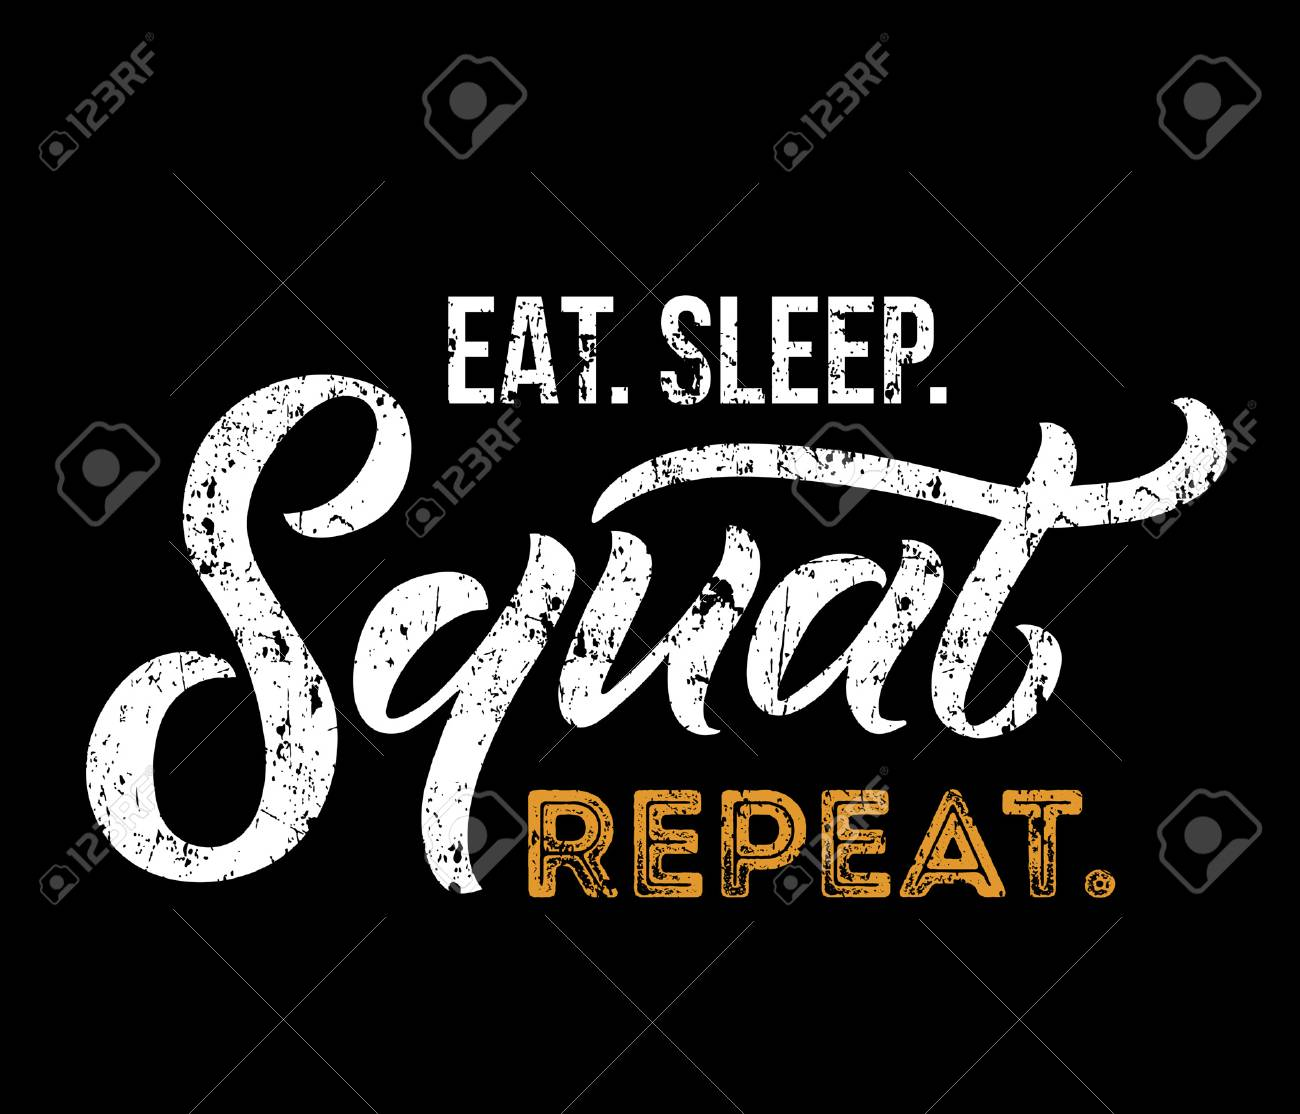 Eat sleep squat repeat. Gym motivational quote with grunge effect..